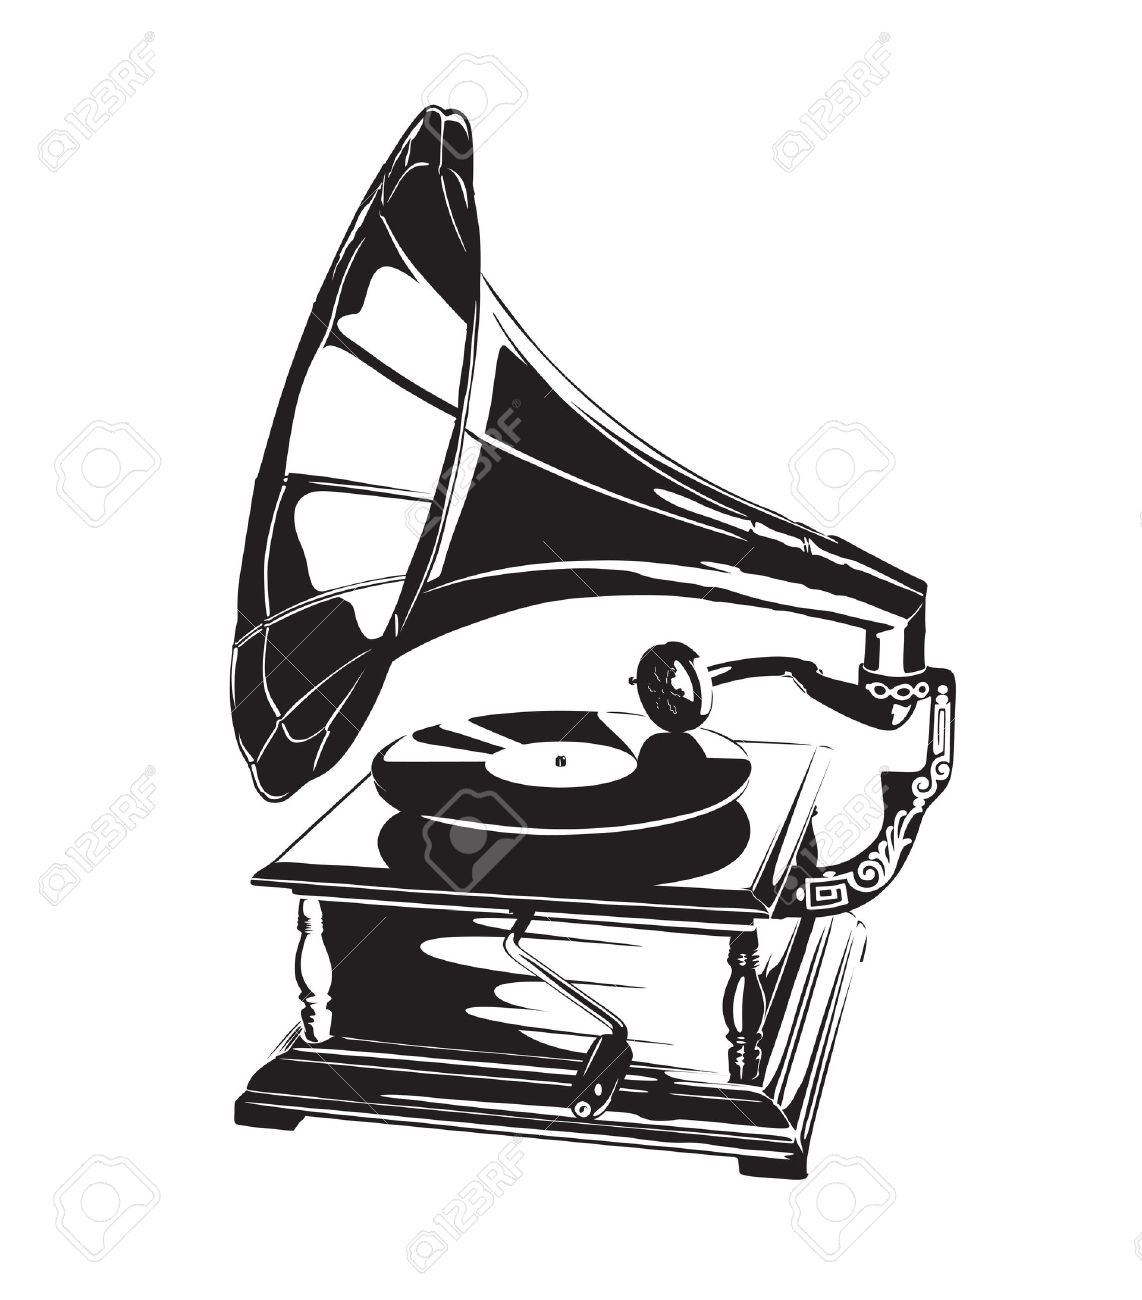 vintage gramophone stencil royalty free cliparts vectors and stock illustration image 12825653 vintage gramophone stencil